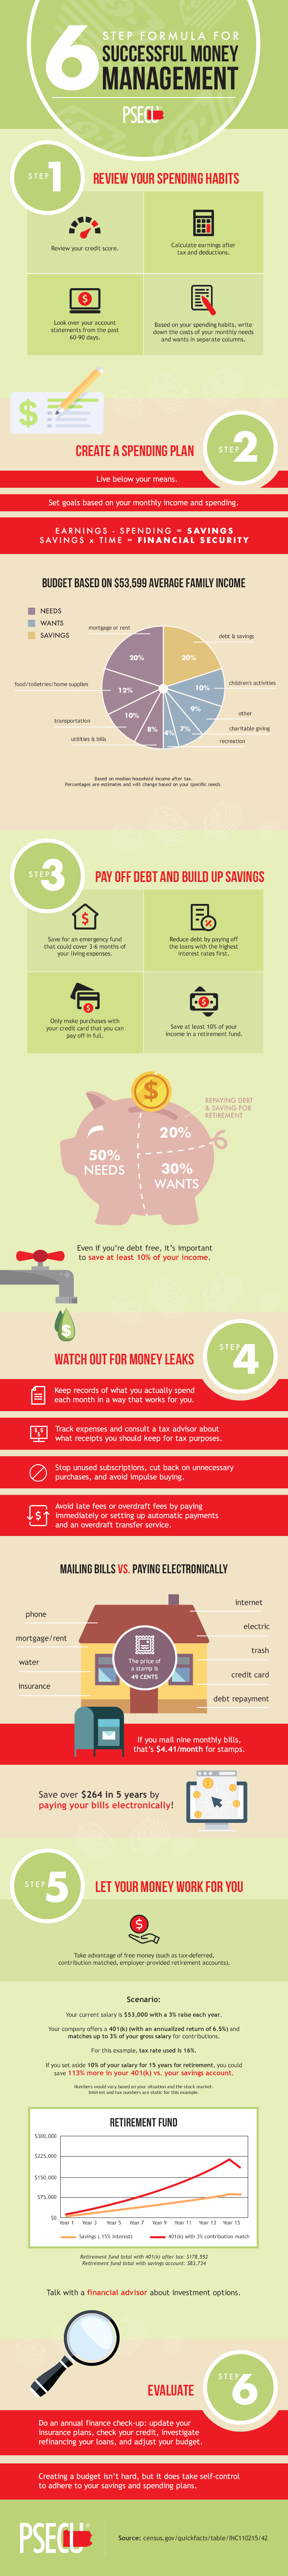 Successful Money Management - Personal Finance Infographic